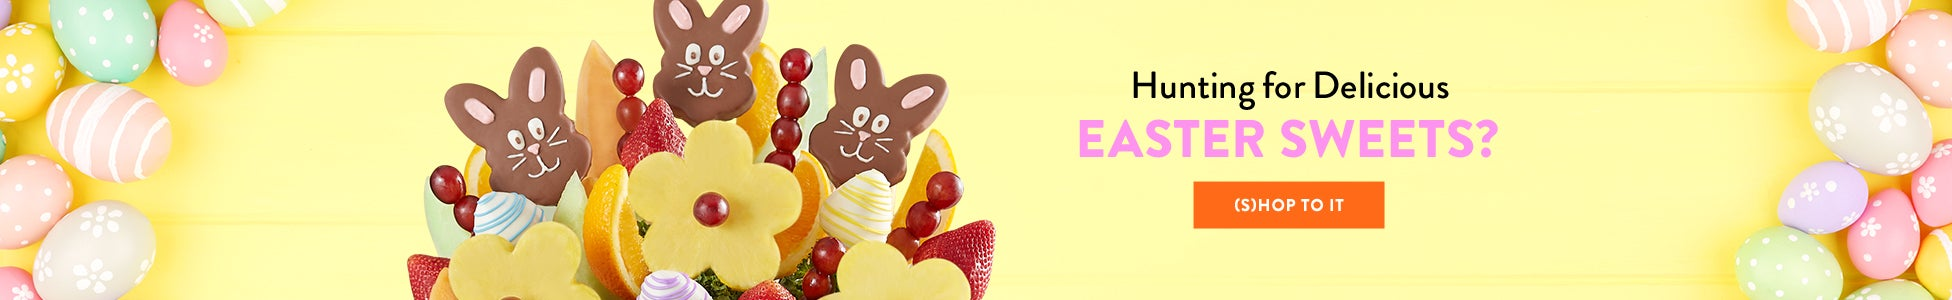 Hunting for Delicious Easter sweets?